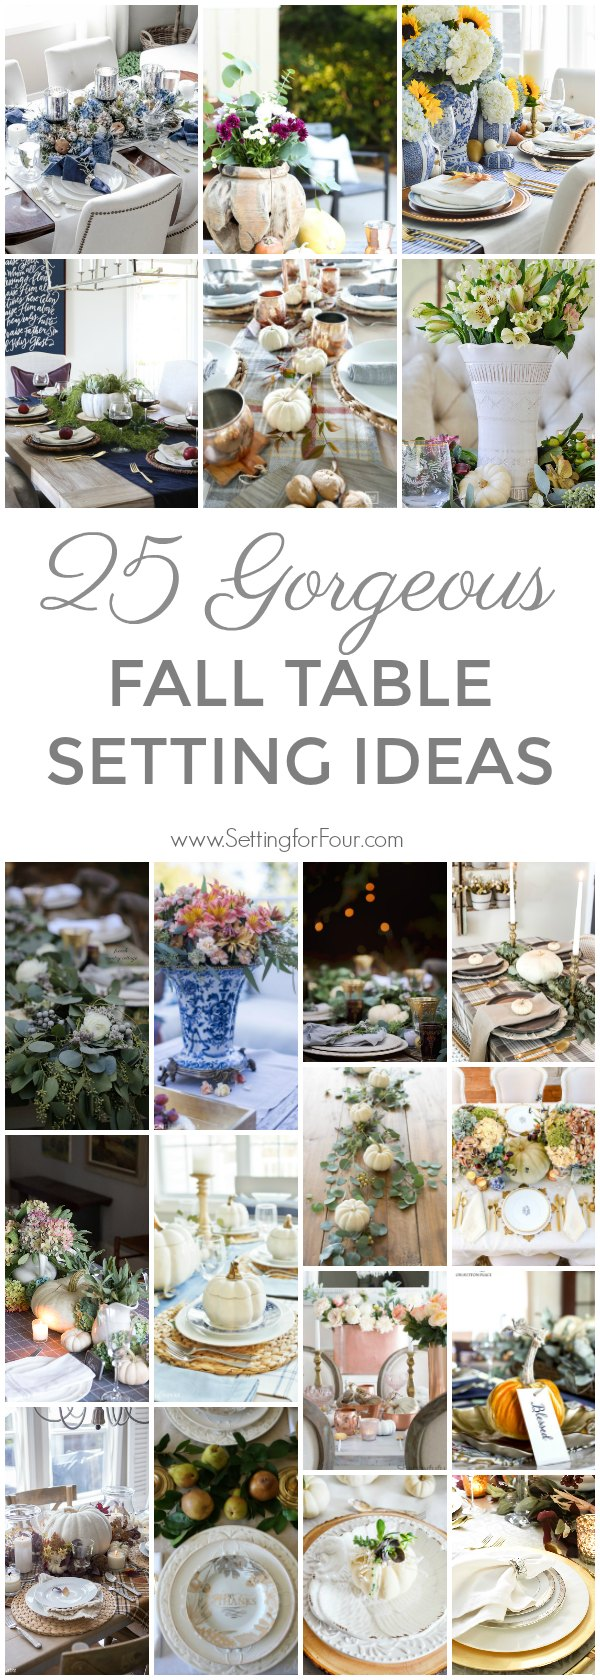 25 Gorgeous Fall Table Setting Ideas #fall #autumn #decor #tablesetting #tablescape #pumpkin #centerpiece #flowers #dinnerware #napkinfold #entertaining